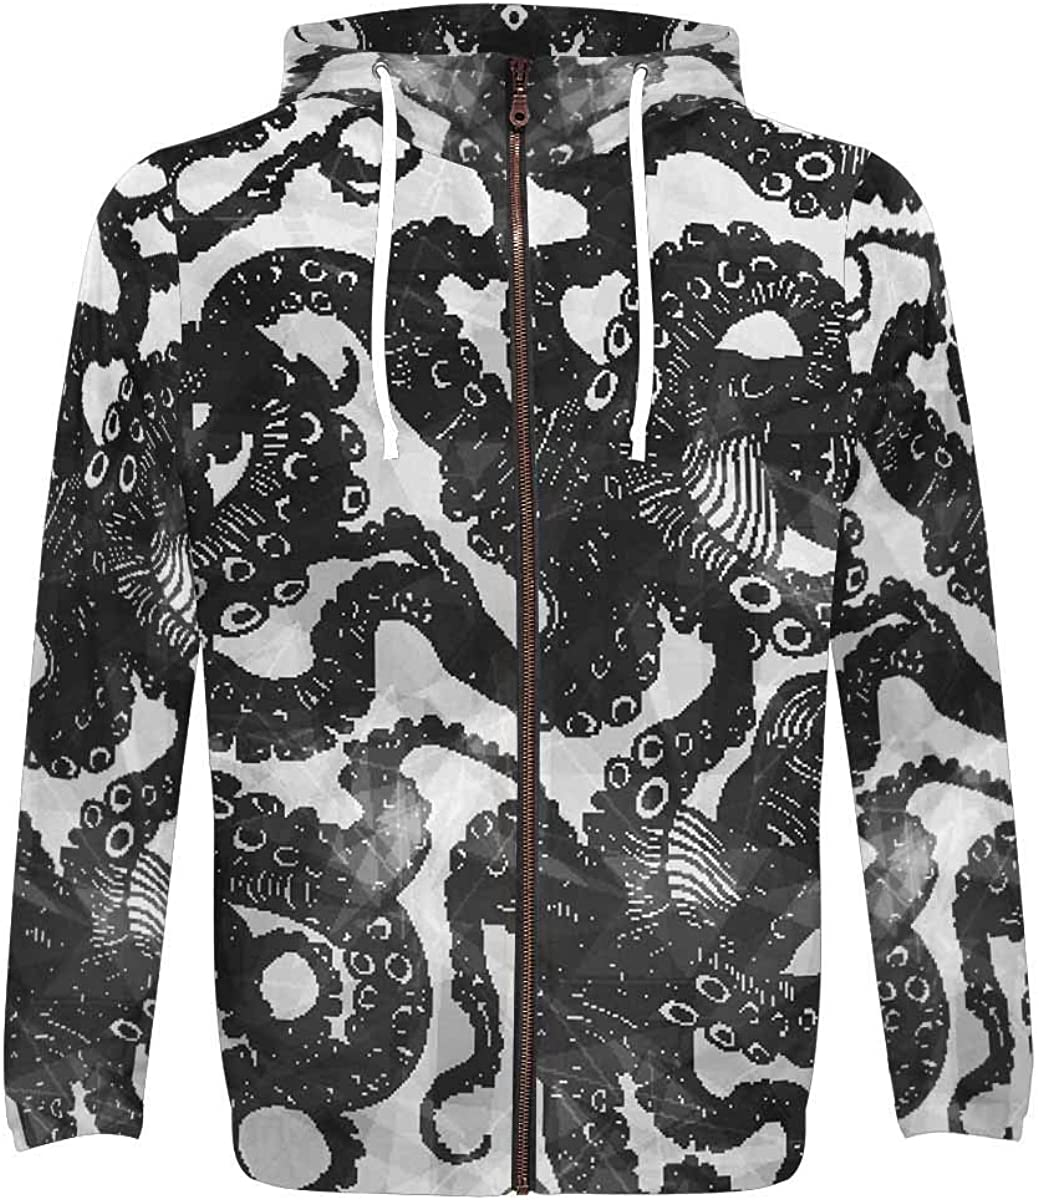 InterestPrint Men's Full Zip Long Fit Athletic Sleeve Max 78% OFF Hoodie wit National uniform free shipping